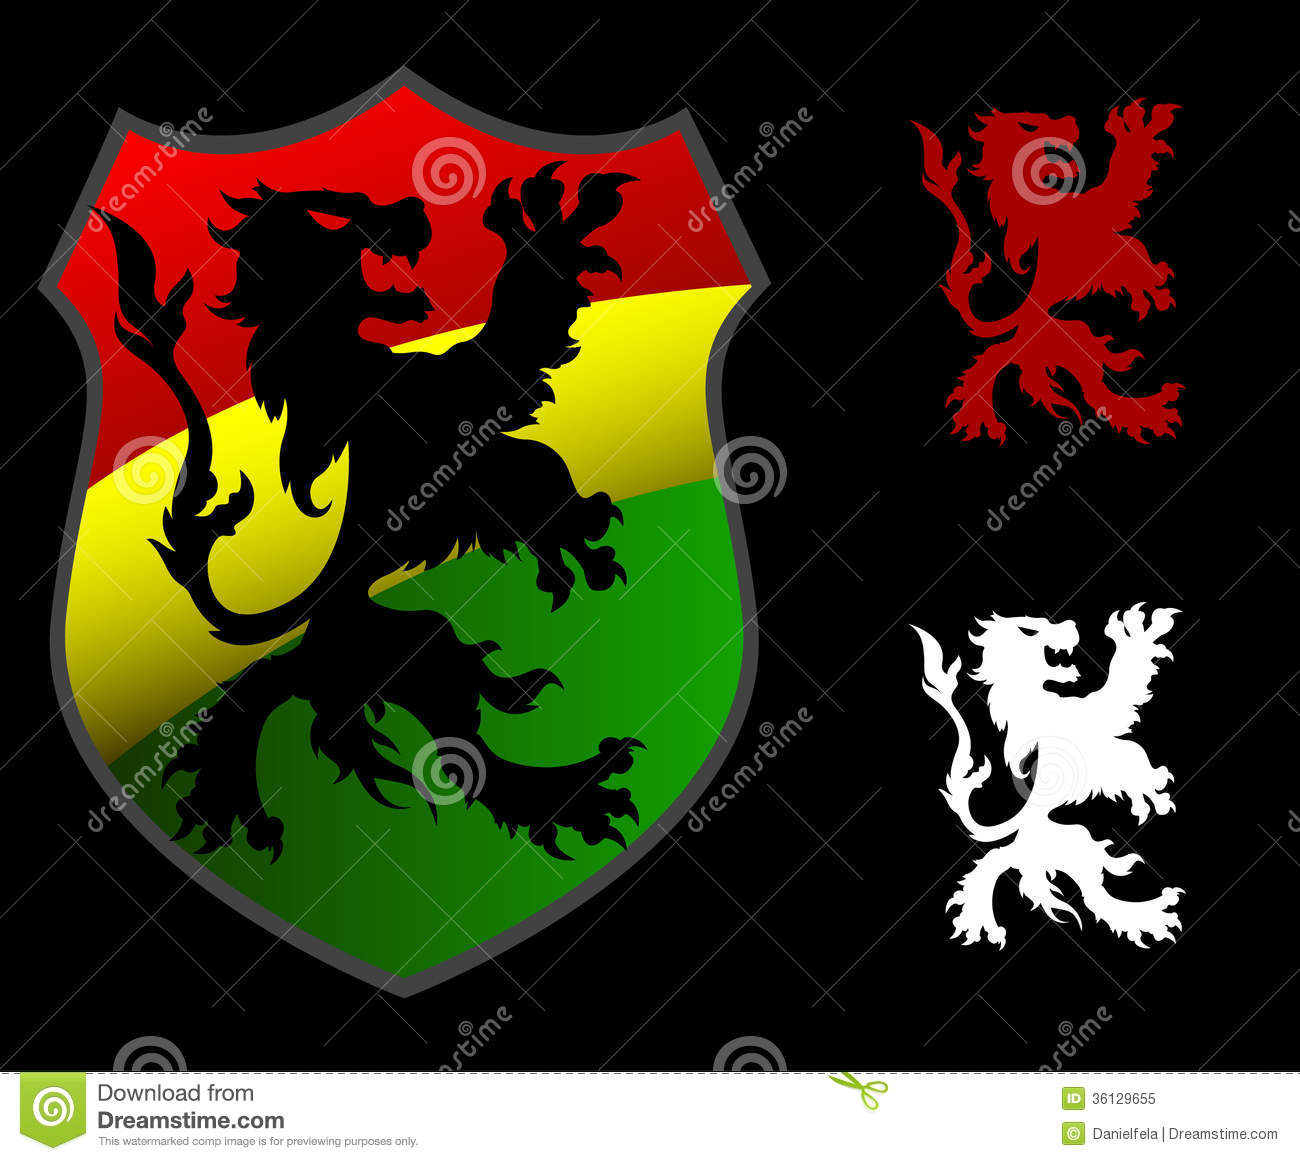 Rastafarian 2: Lion Rastafarian Shield Stock Vector. Image Of Animals